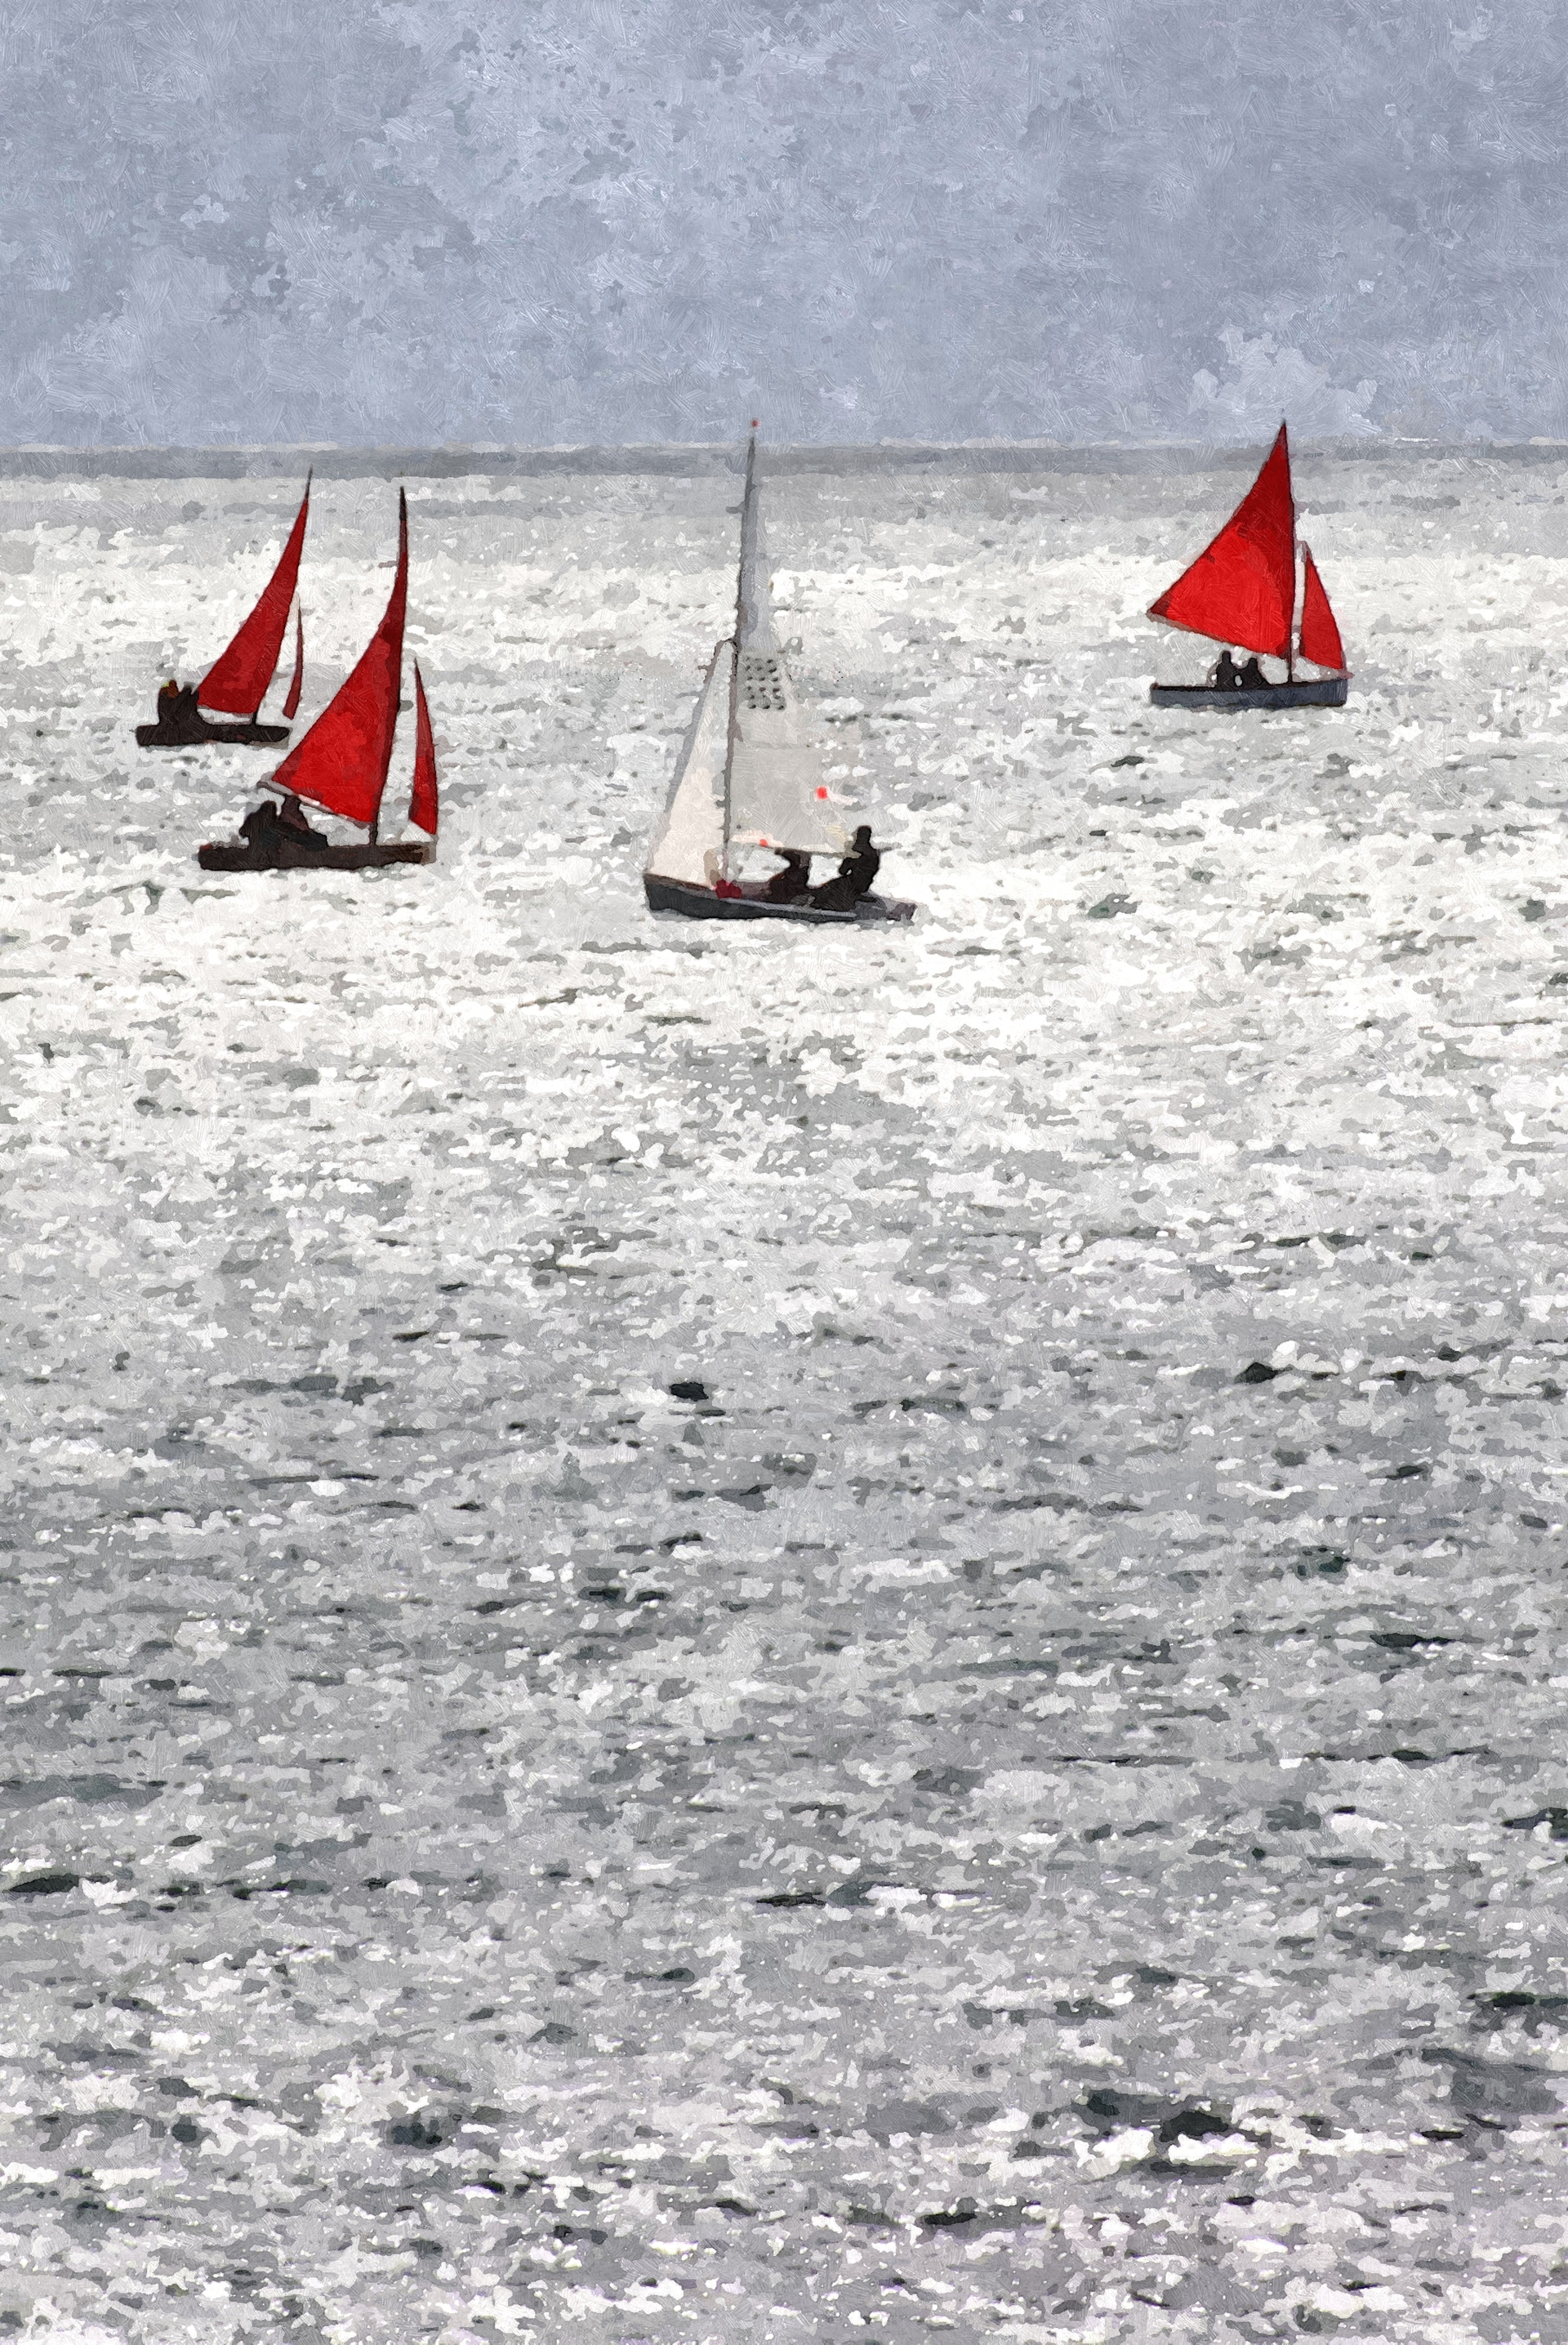 Silver Sailing artwork by DAVID LACEY - art listed for sale on Artplode